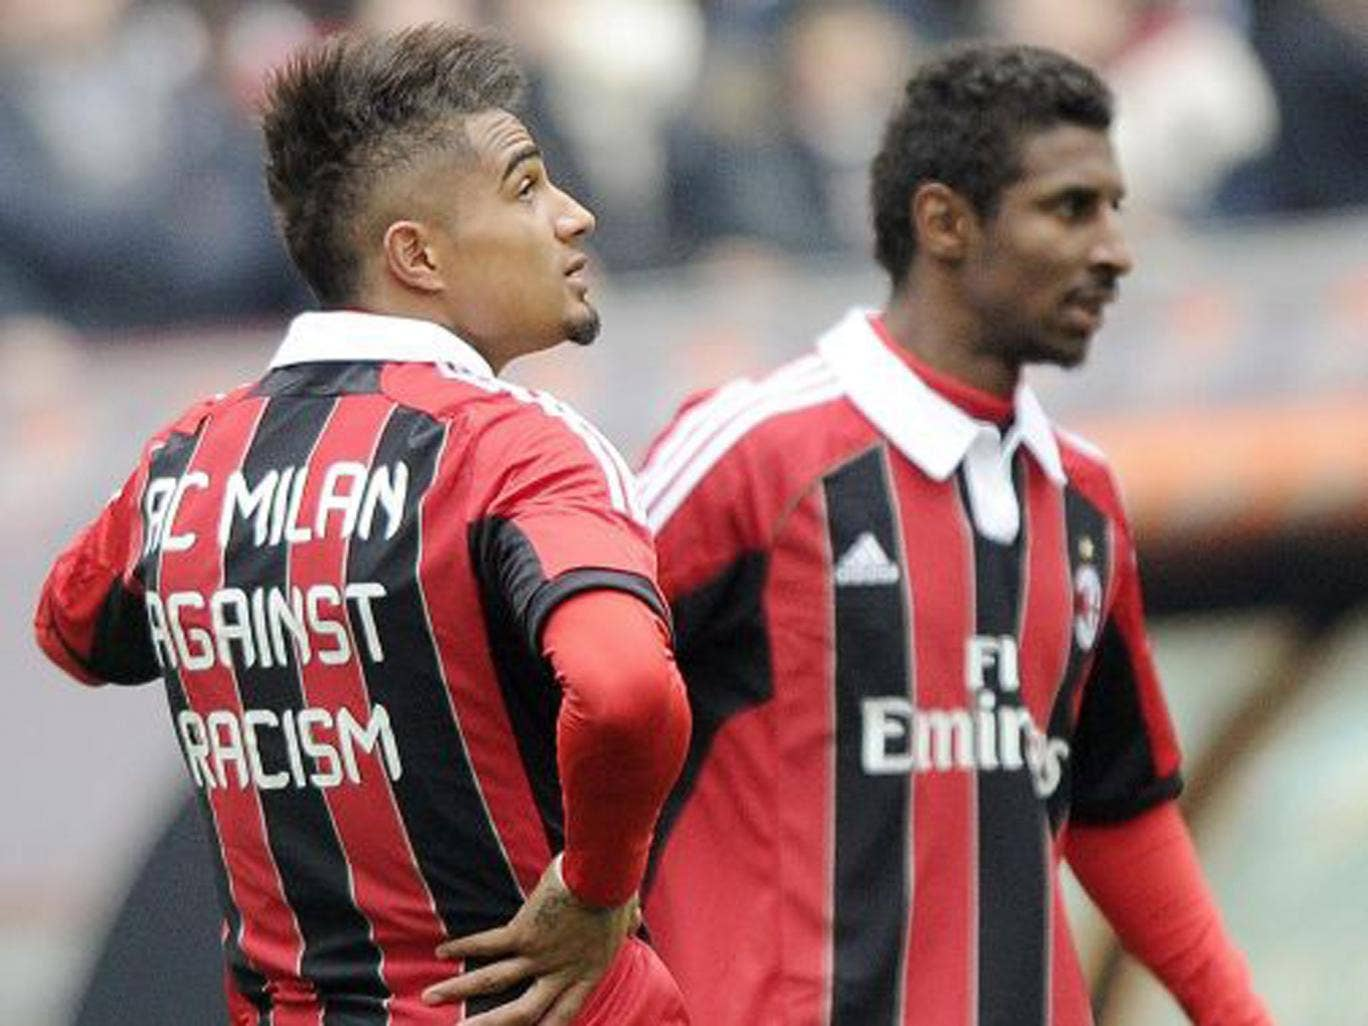 Milan's Kevin-Prince Boateng (left) and Kevin Constant wear  anti-racism shirts before their game against Siena yesterday